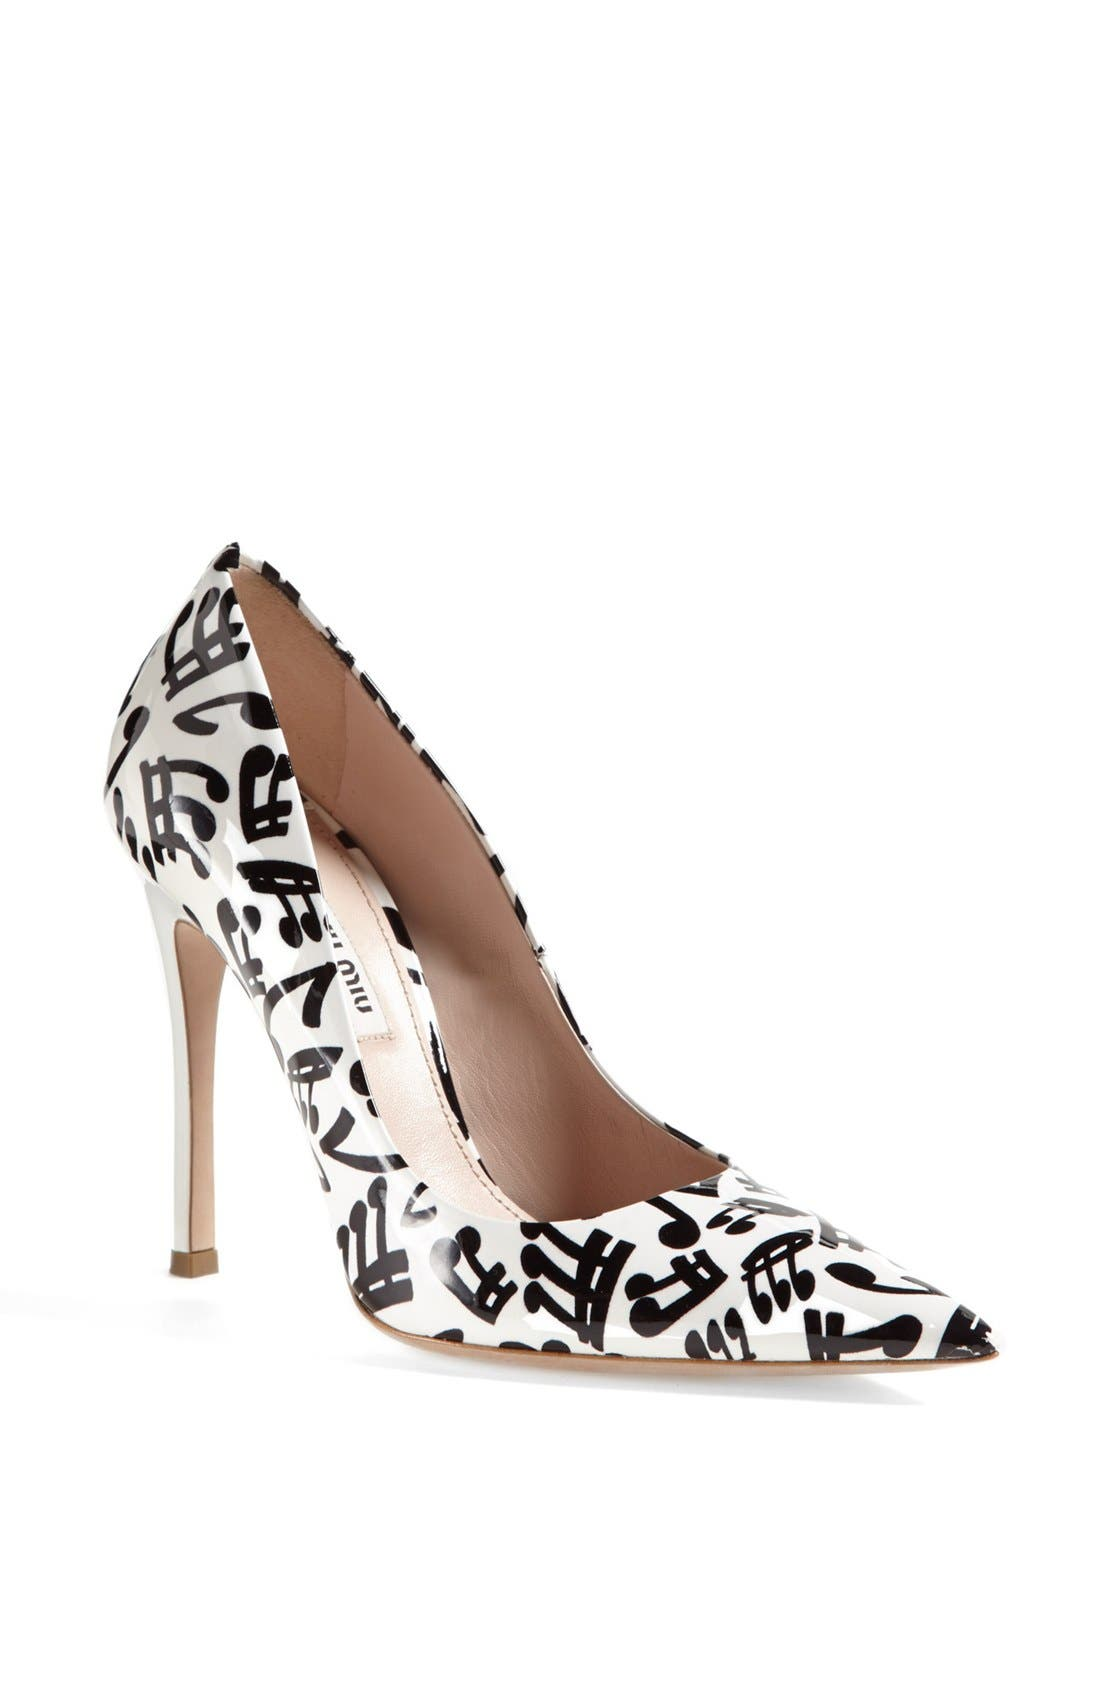 Main Image - Miu Miu 'Musical' Pump